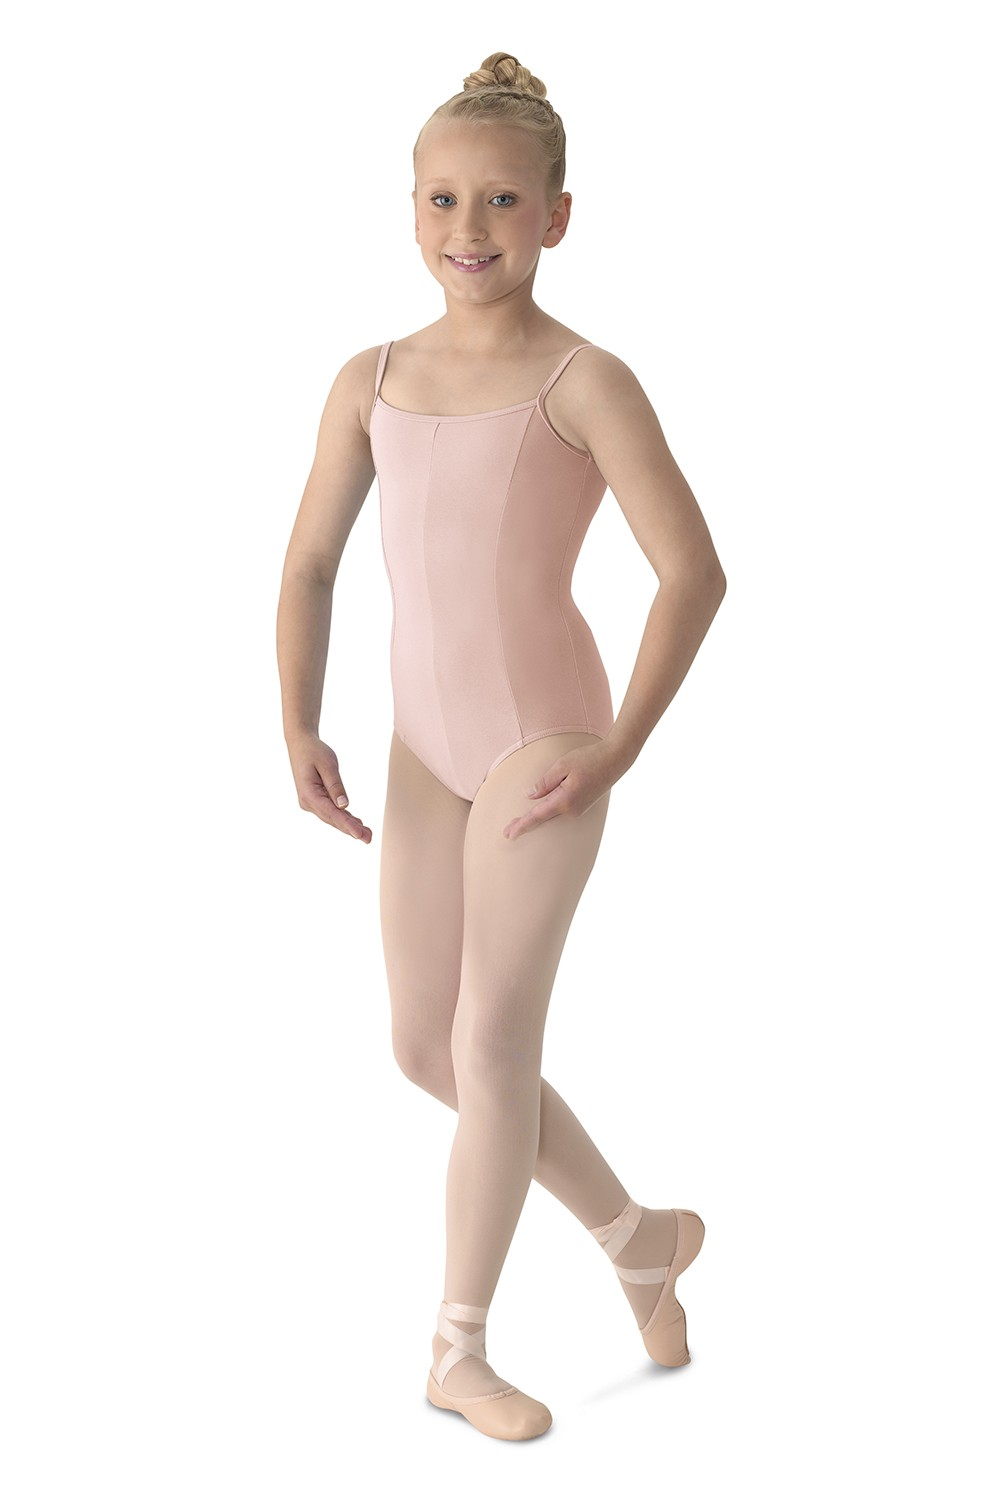 Justaucorps Princesse À Bretelles Fines - Col V Avec Coutures Children's Dance Leotards